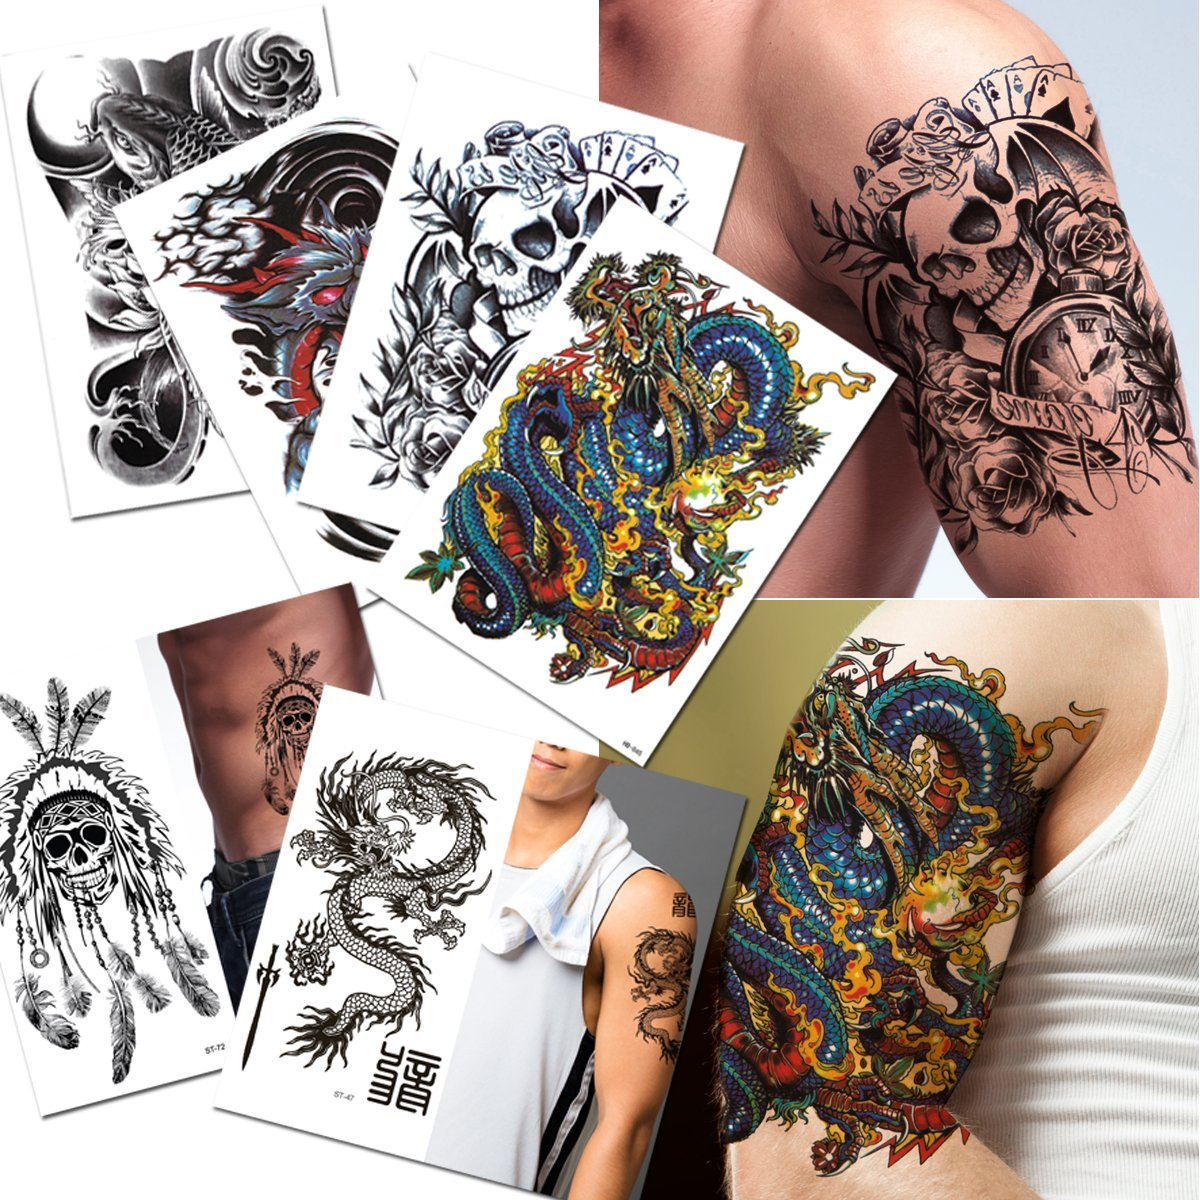 87e5e04f9a1a1 Get Quotations · 6-pack Halloween Skull Fish Dragon Temporary Tattoos Lower  Back Shoulder Neck Arm Temporary Tattoos